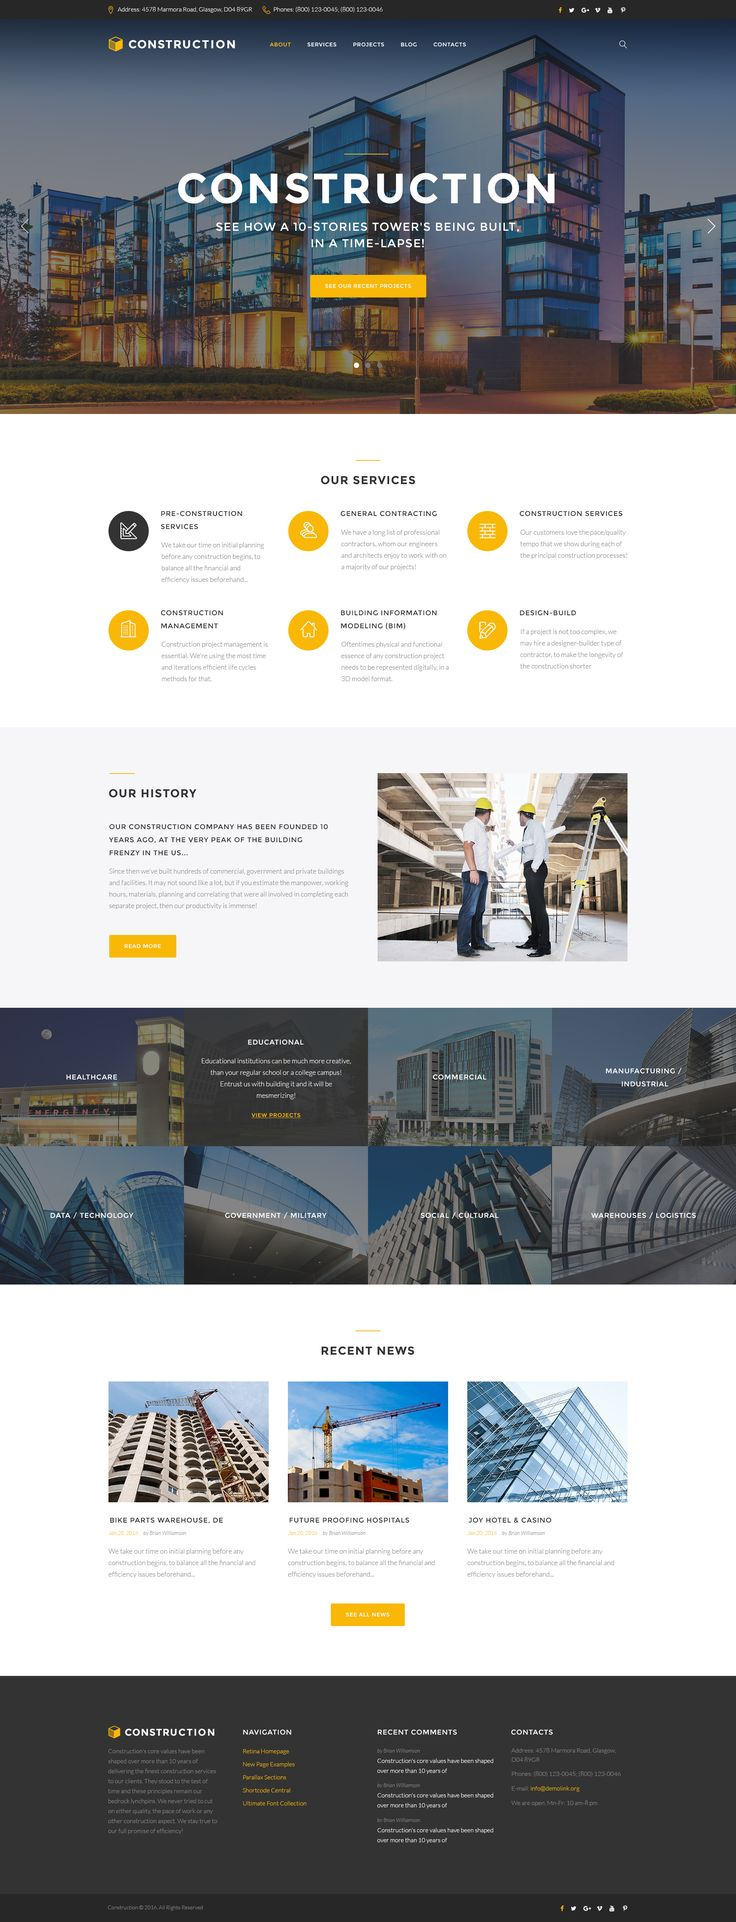 Construction - Construction Company Responsive Multipage Website Template #62269